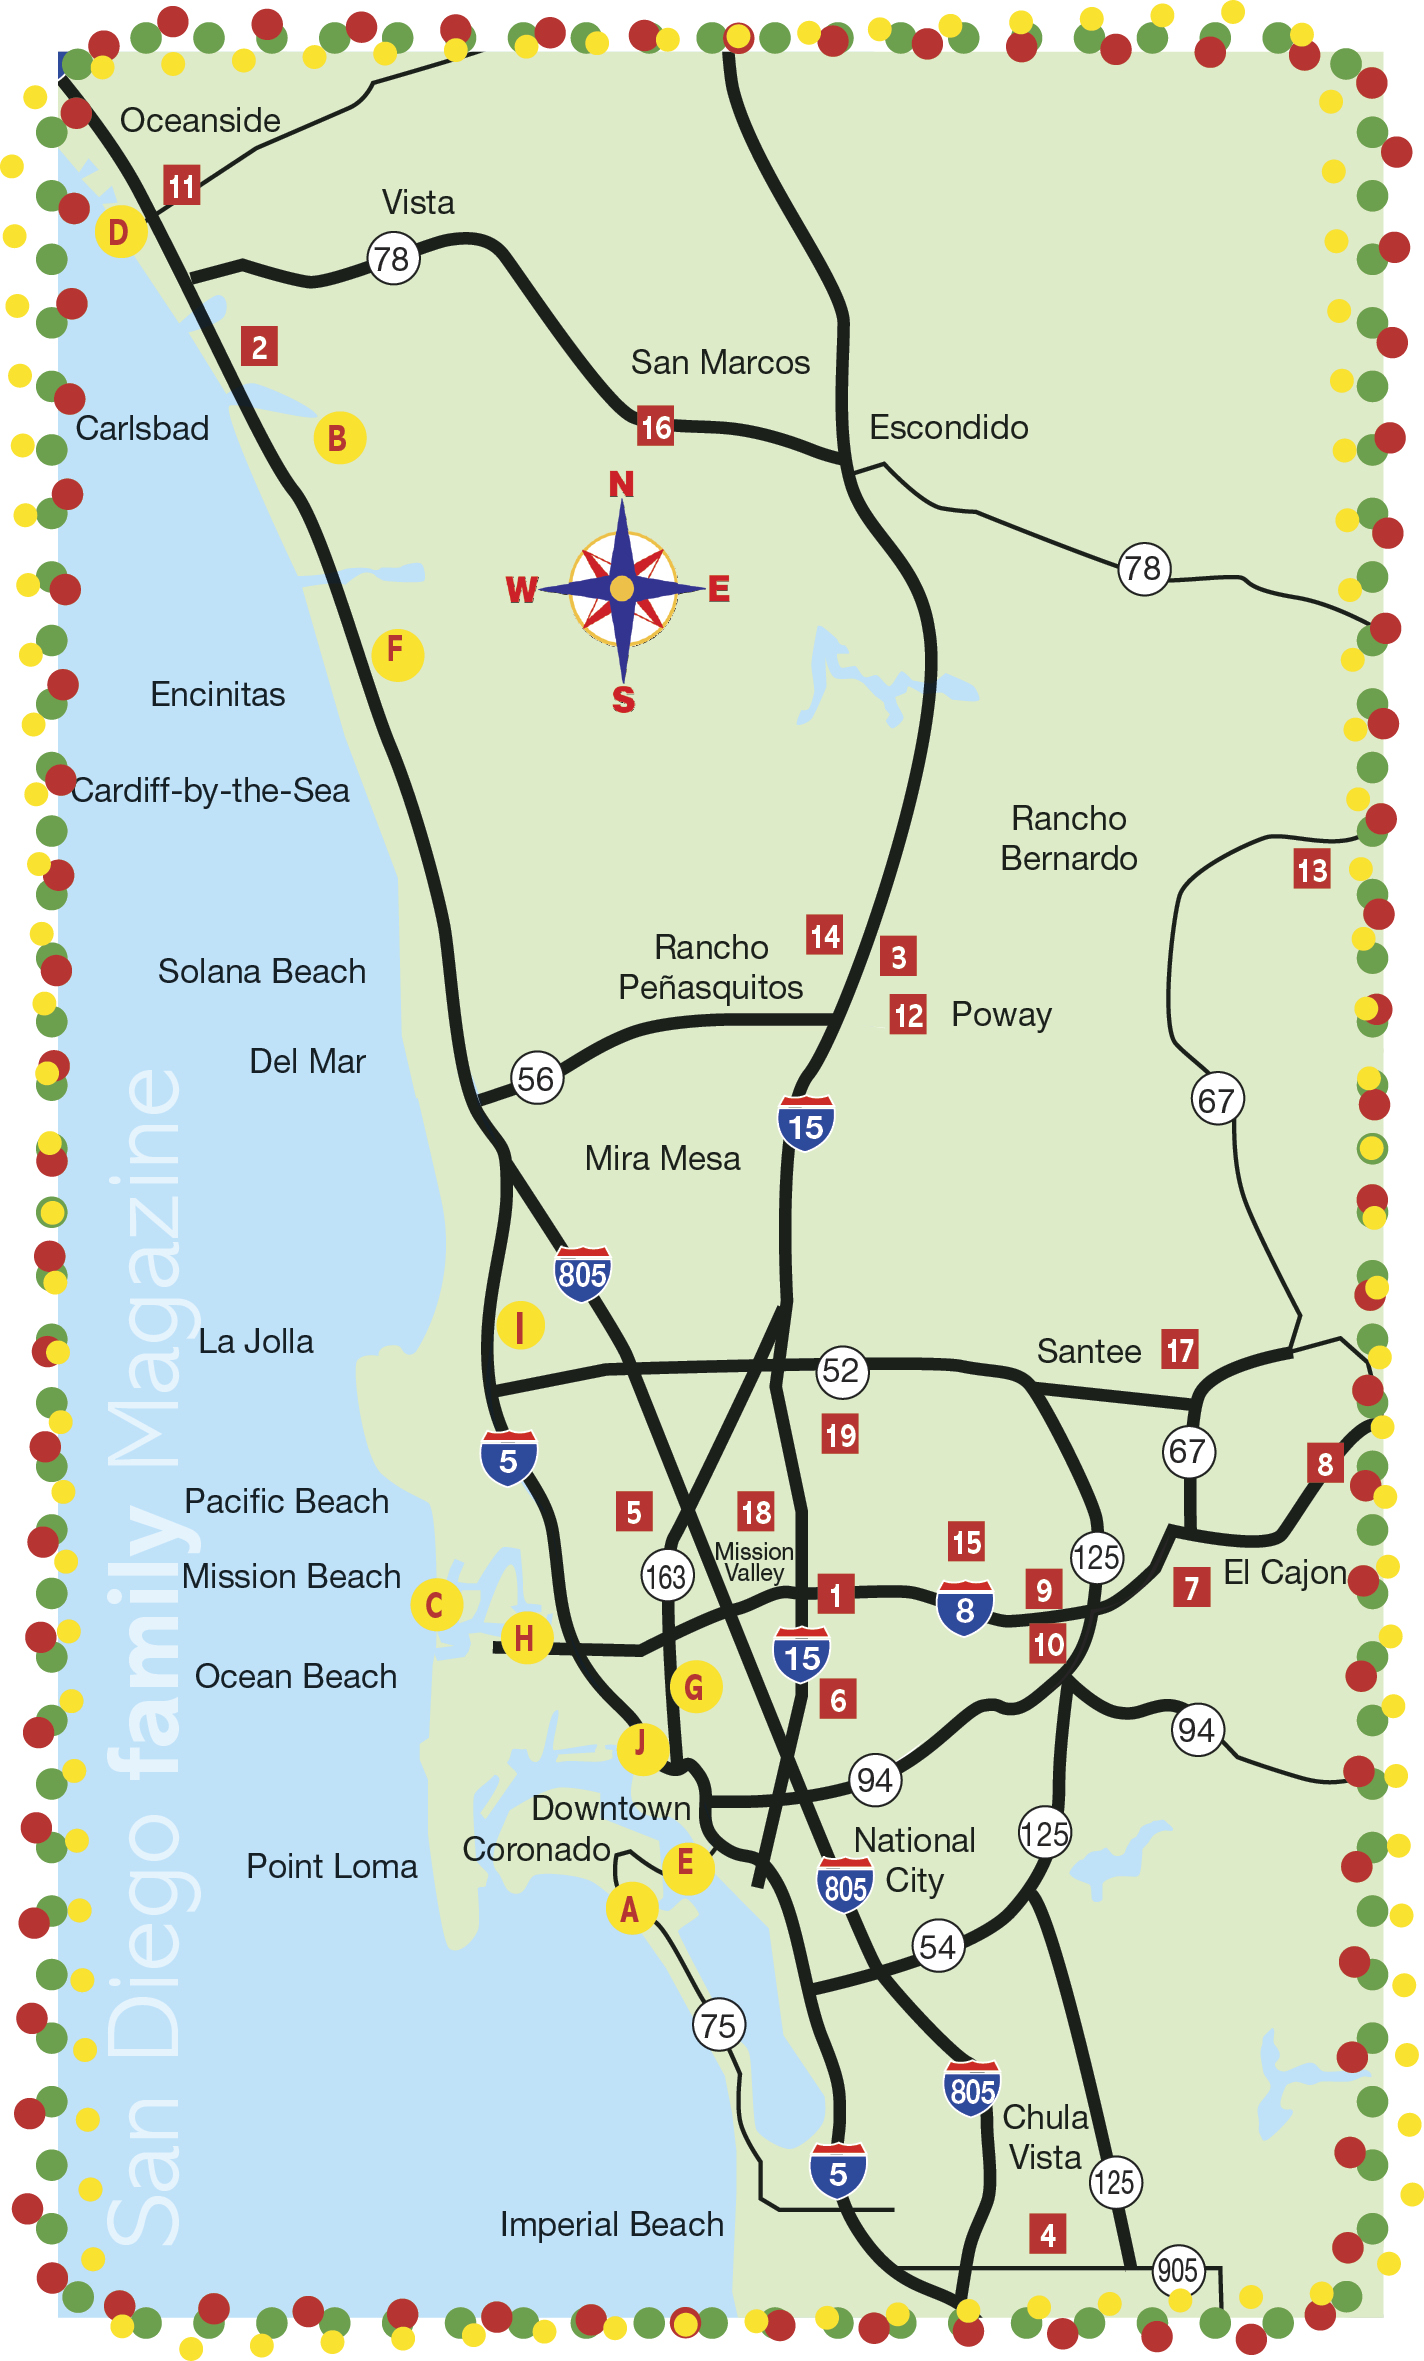 Find an amazing light display near you with San Diego's Best Map of Christmas Light Displays!